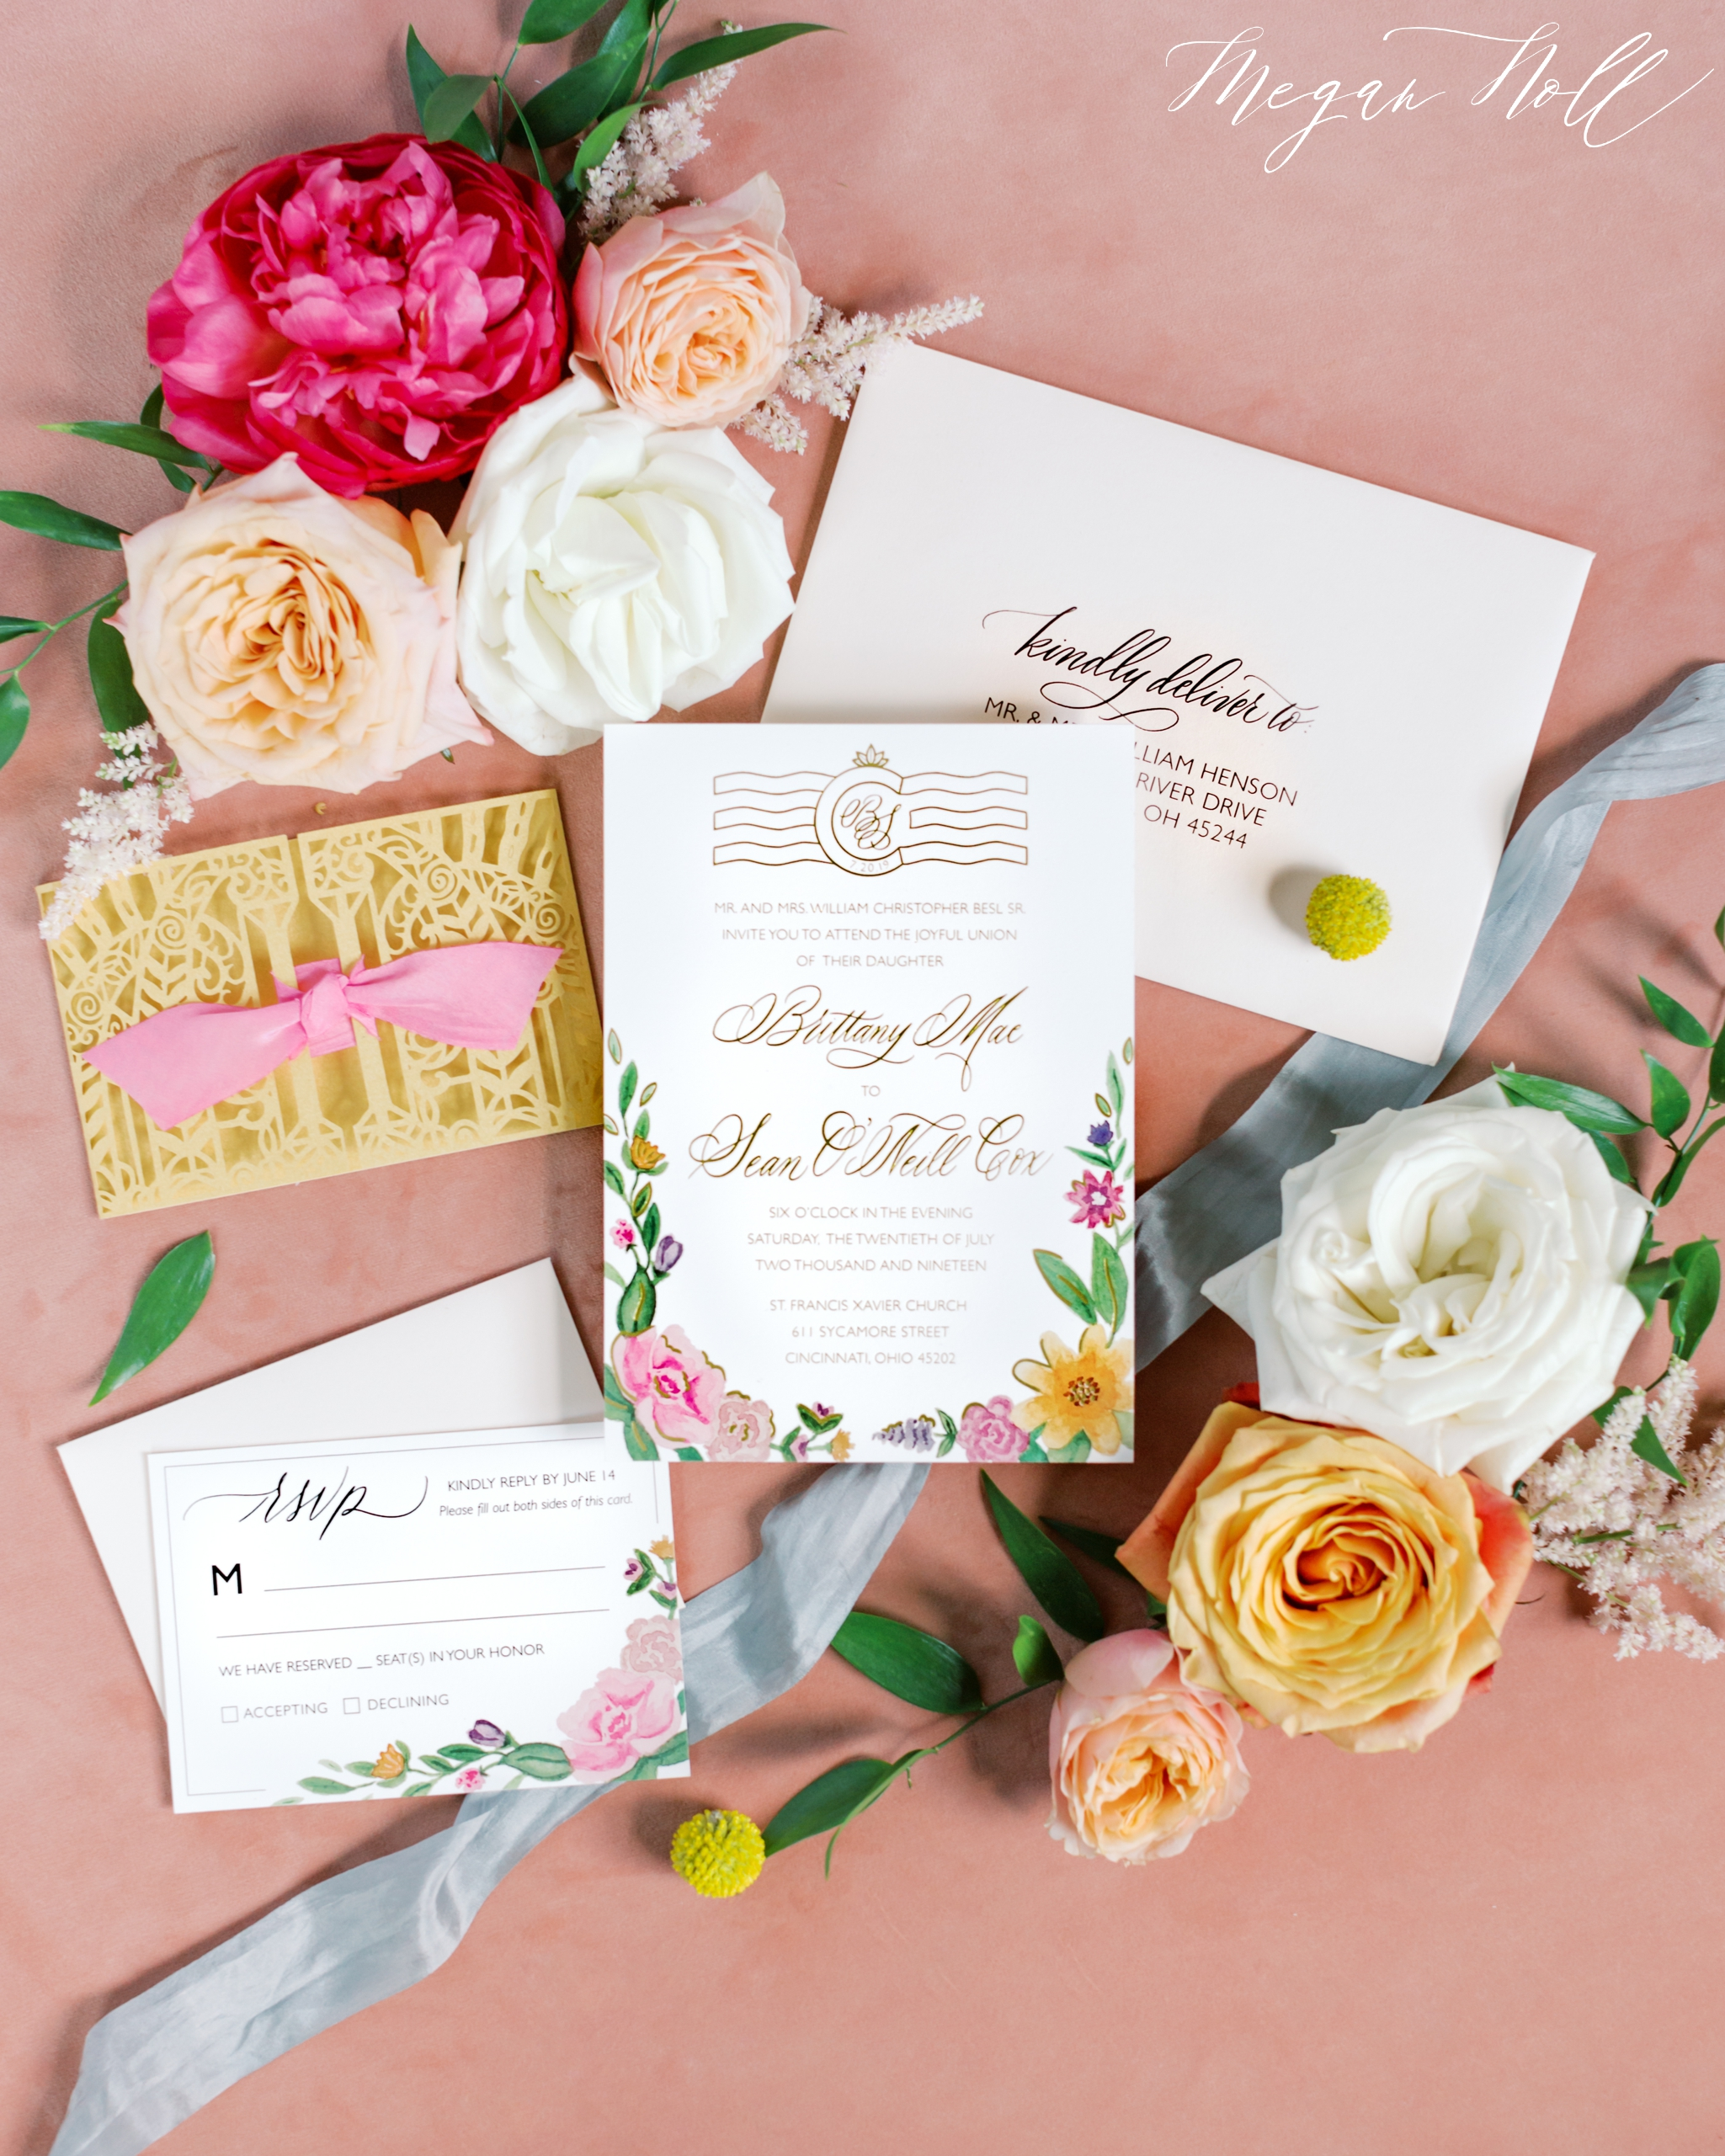 ElisaAnne Calligraphy designed pink and gold wedding invitations